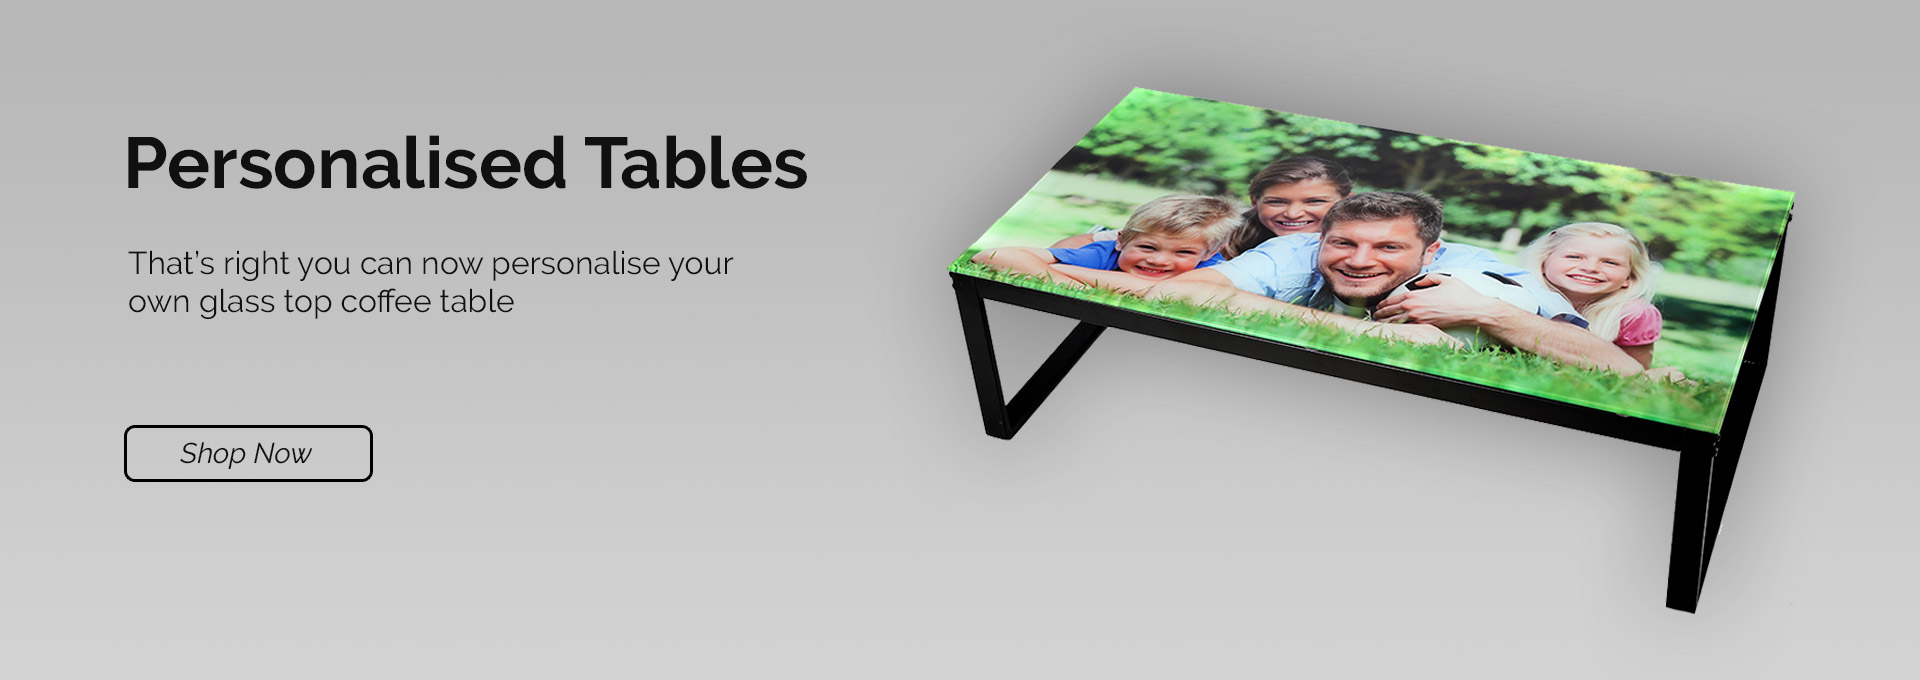 Personalised Tables